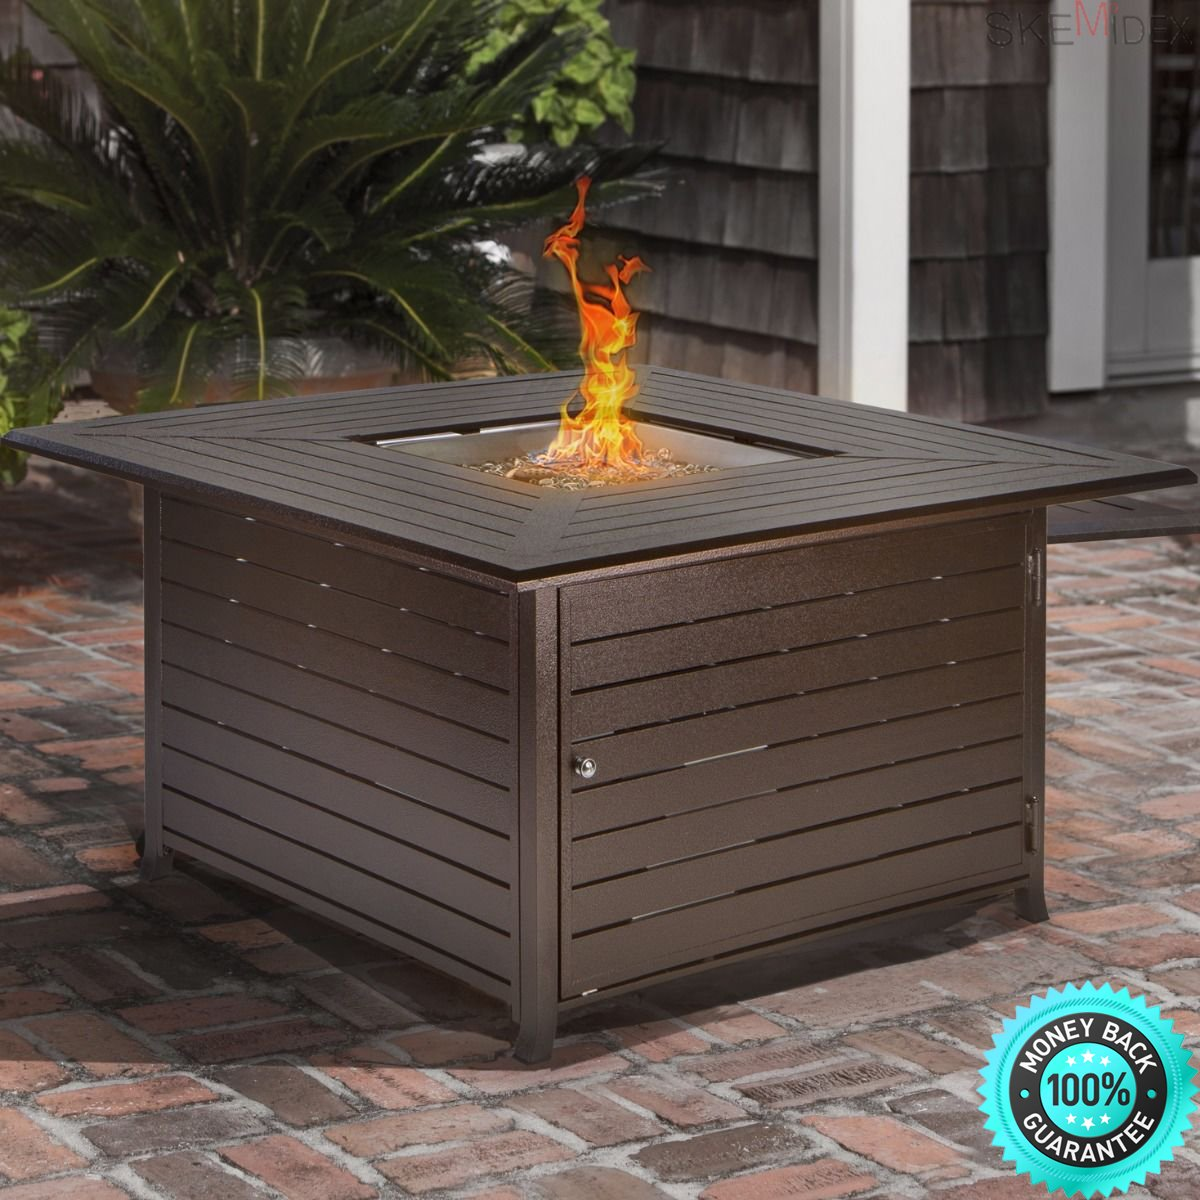 SKEMIDEX---Outdoor Backyard Patio LP Propane Gas Fire Pit Heater Square Table With Cover And chiminea clay terracotta chiminea clay chiminea for sale mexican clay chiminea chiminea lowes chiminea